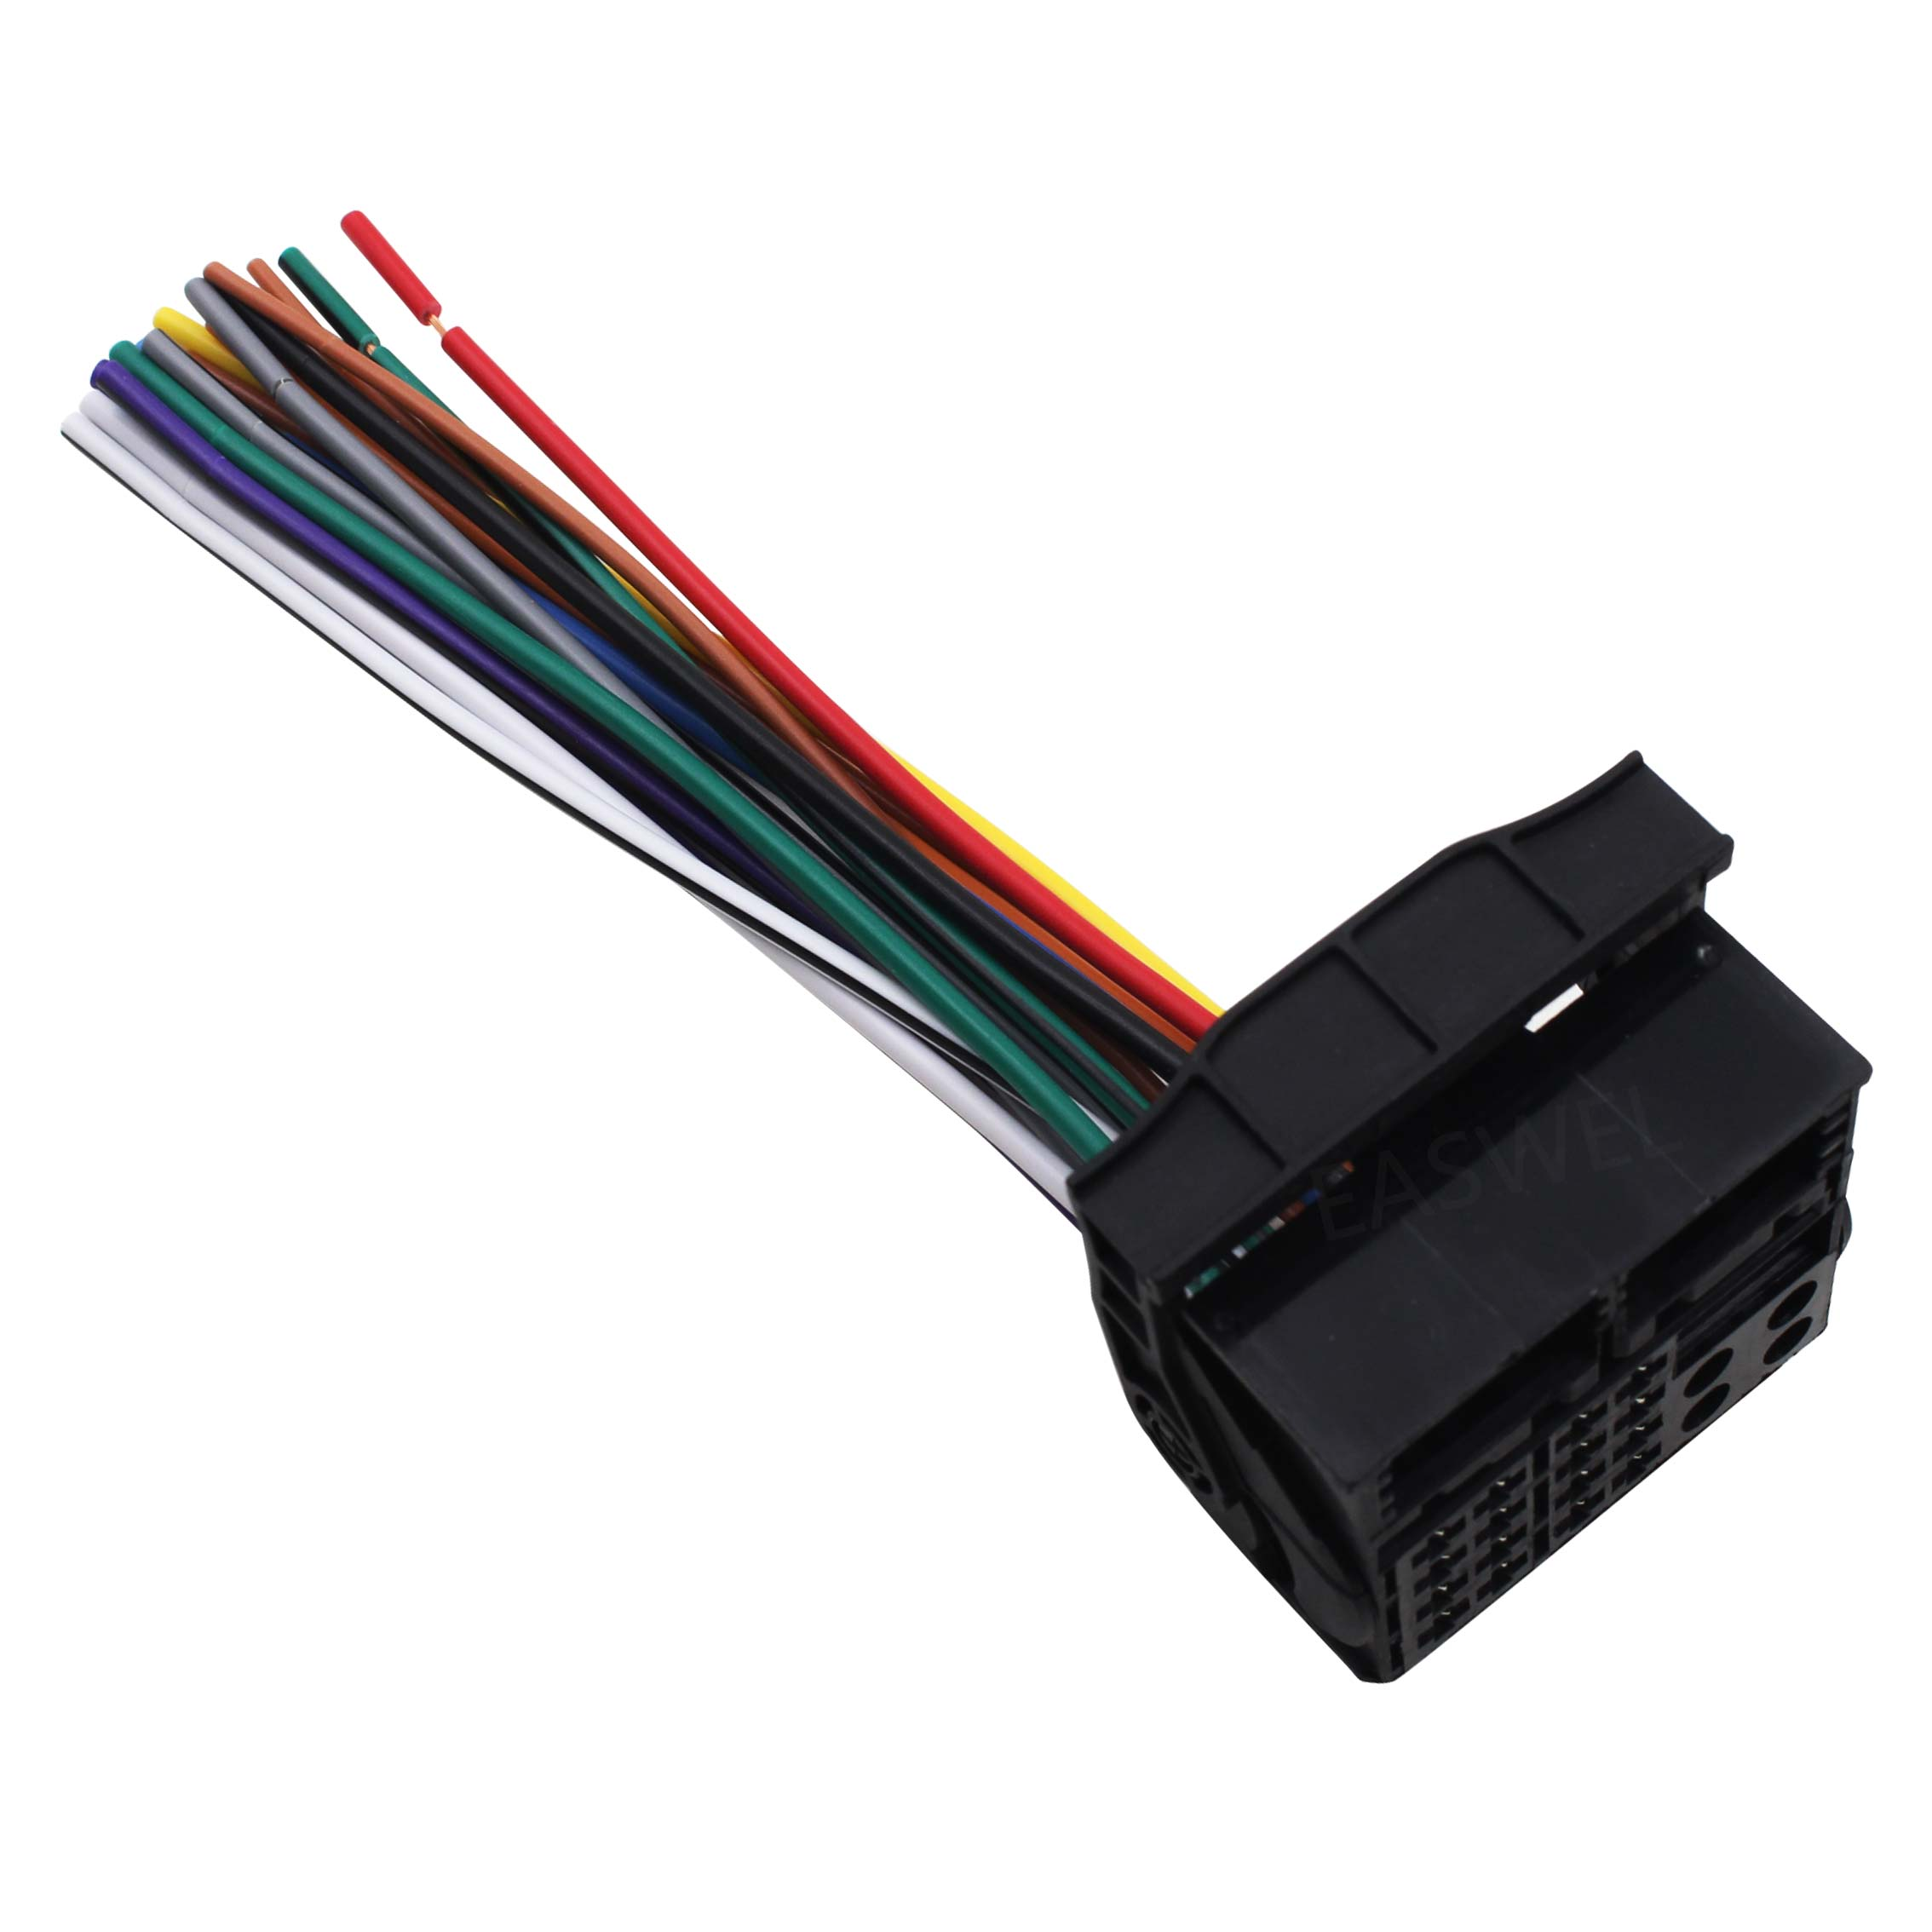 Car Stereo Radio Receiver Wiring Harness for Ford 2010 2012 ... on car wiring supplies, car stereo sleeve, leather dog harness, car stereo with ipod integration, car fuse, 95 sc400 stereo harness, car speaker, car stereo alternators, car stereo cover,